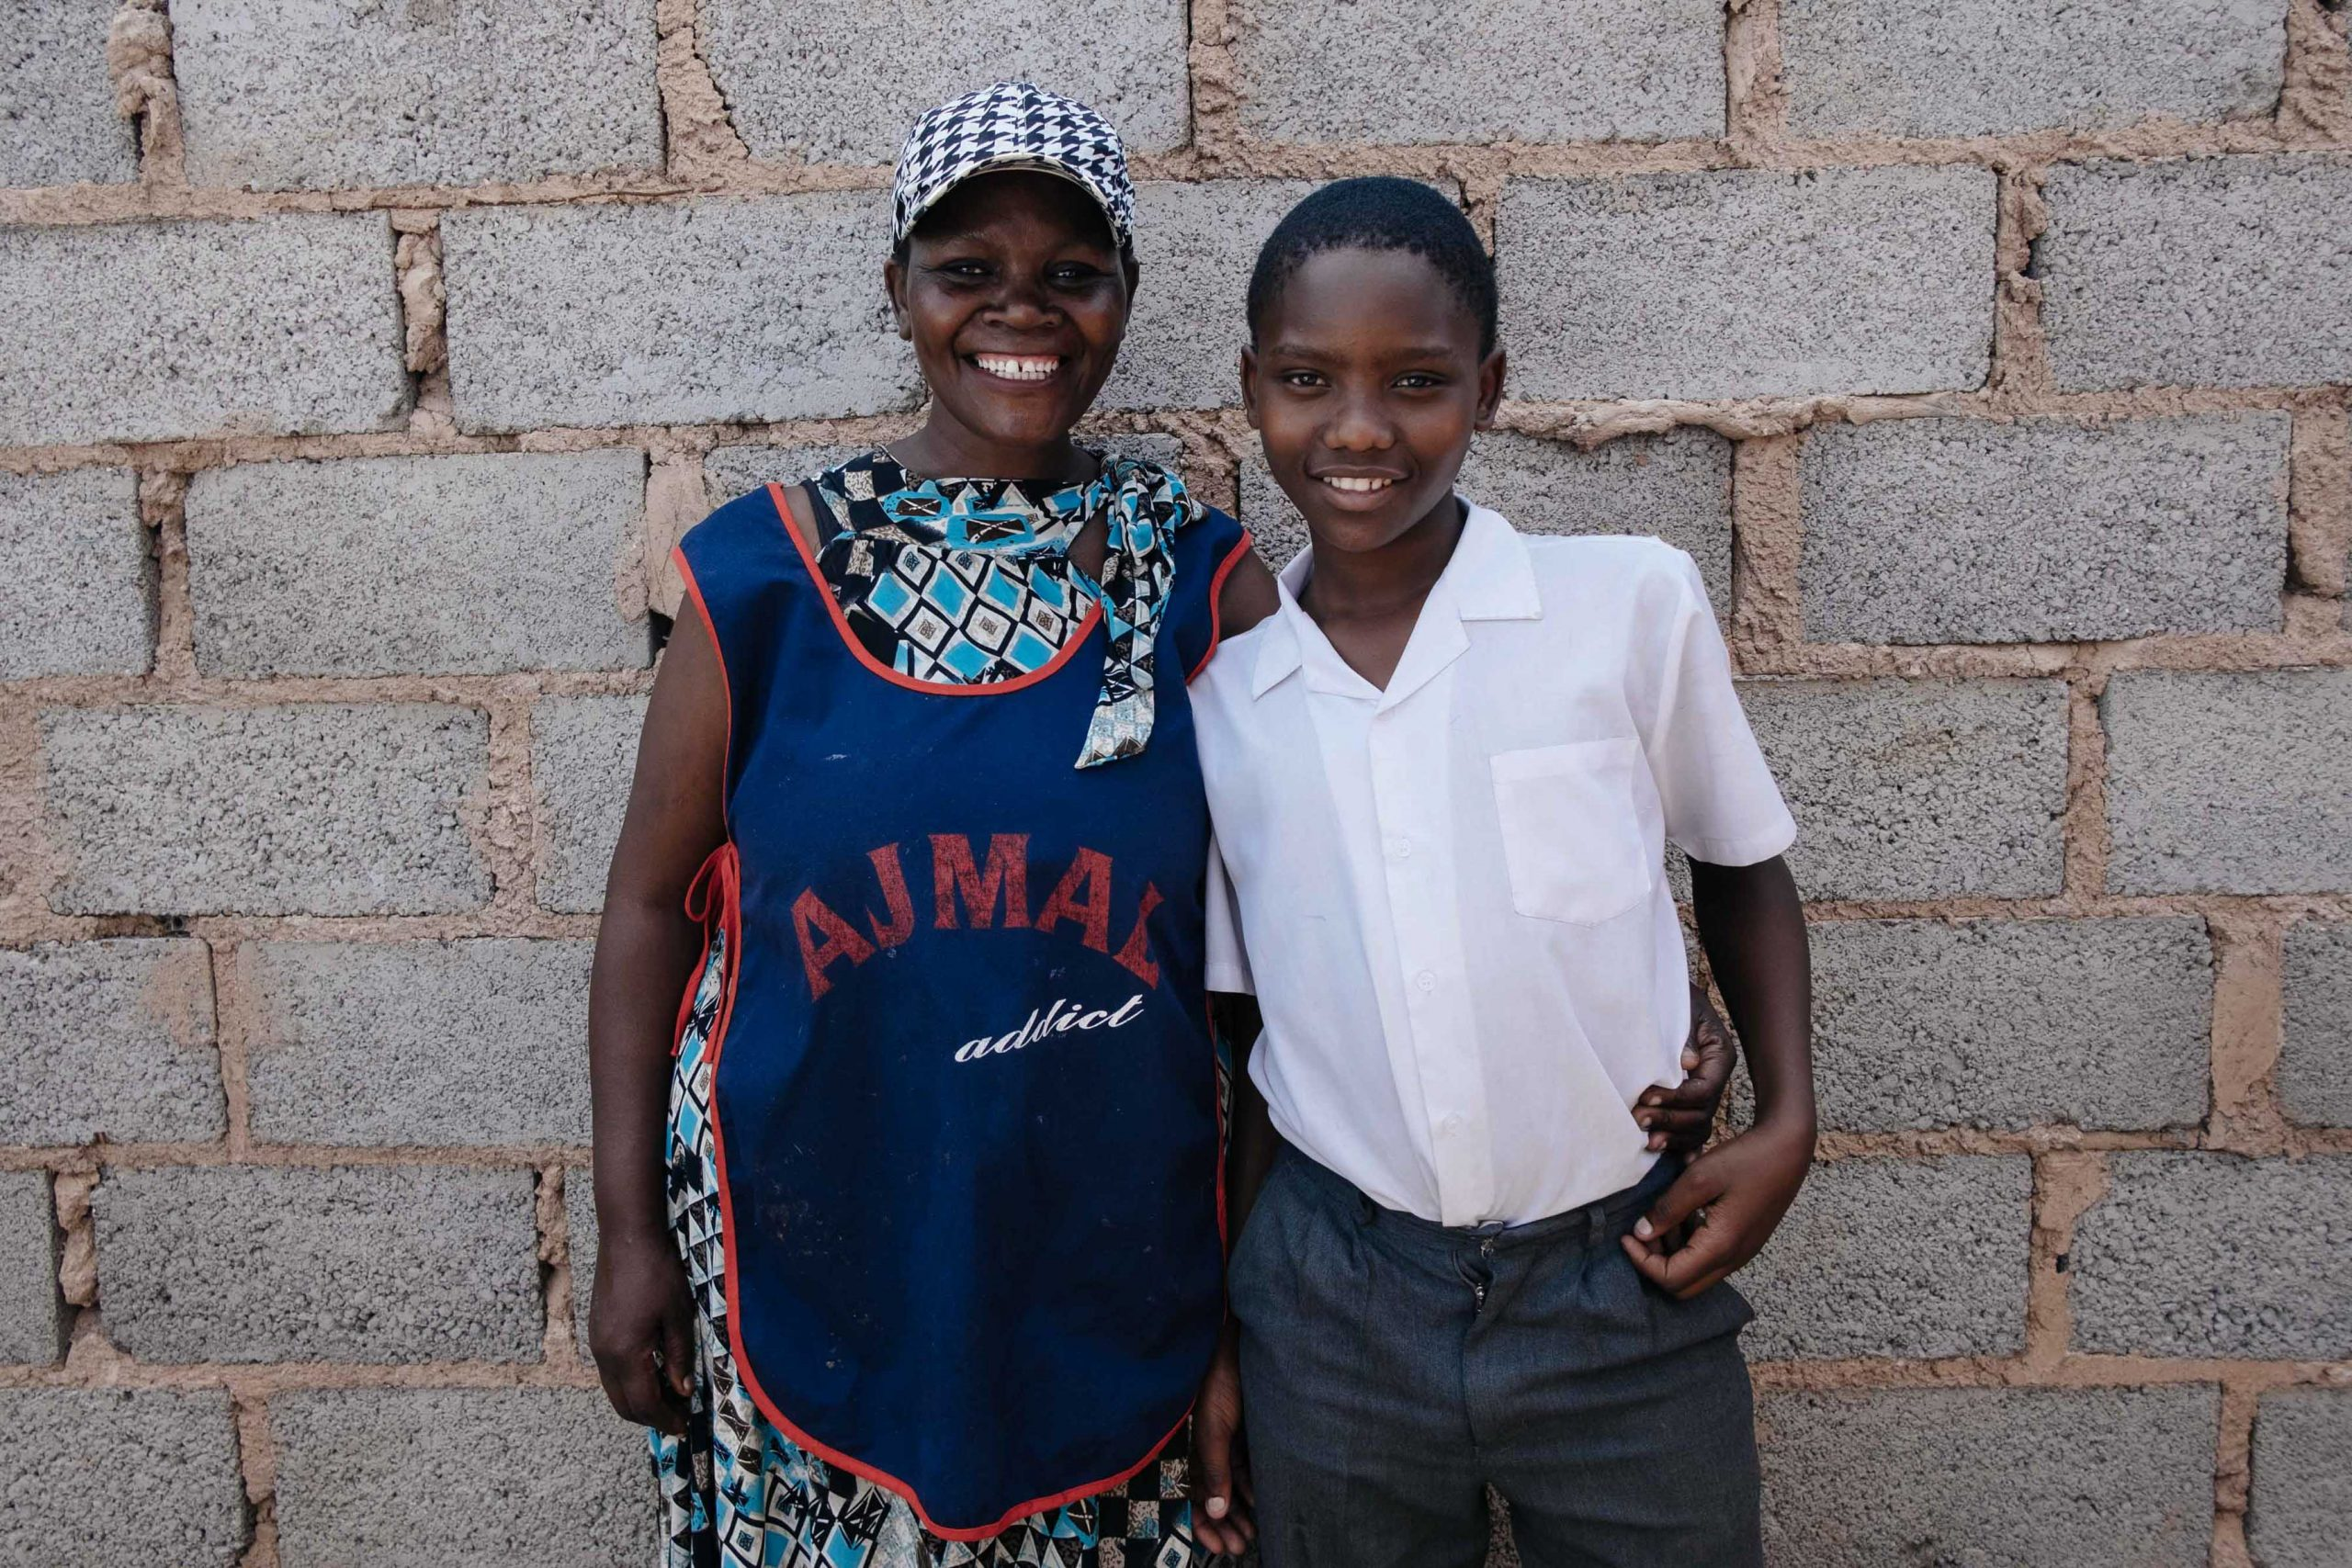 26 February 2020: Kedibone Mutauhatshindi, 45, with her son, Kwazi Ngwenya, 13, at the centre in Meadowlands, Soweto.